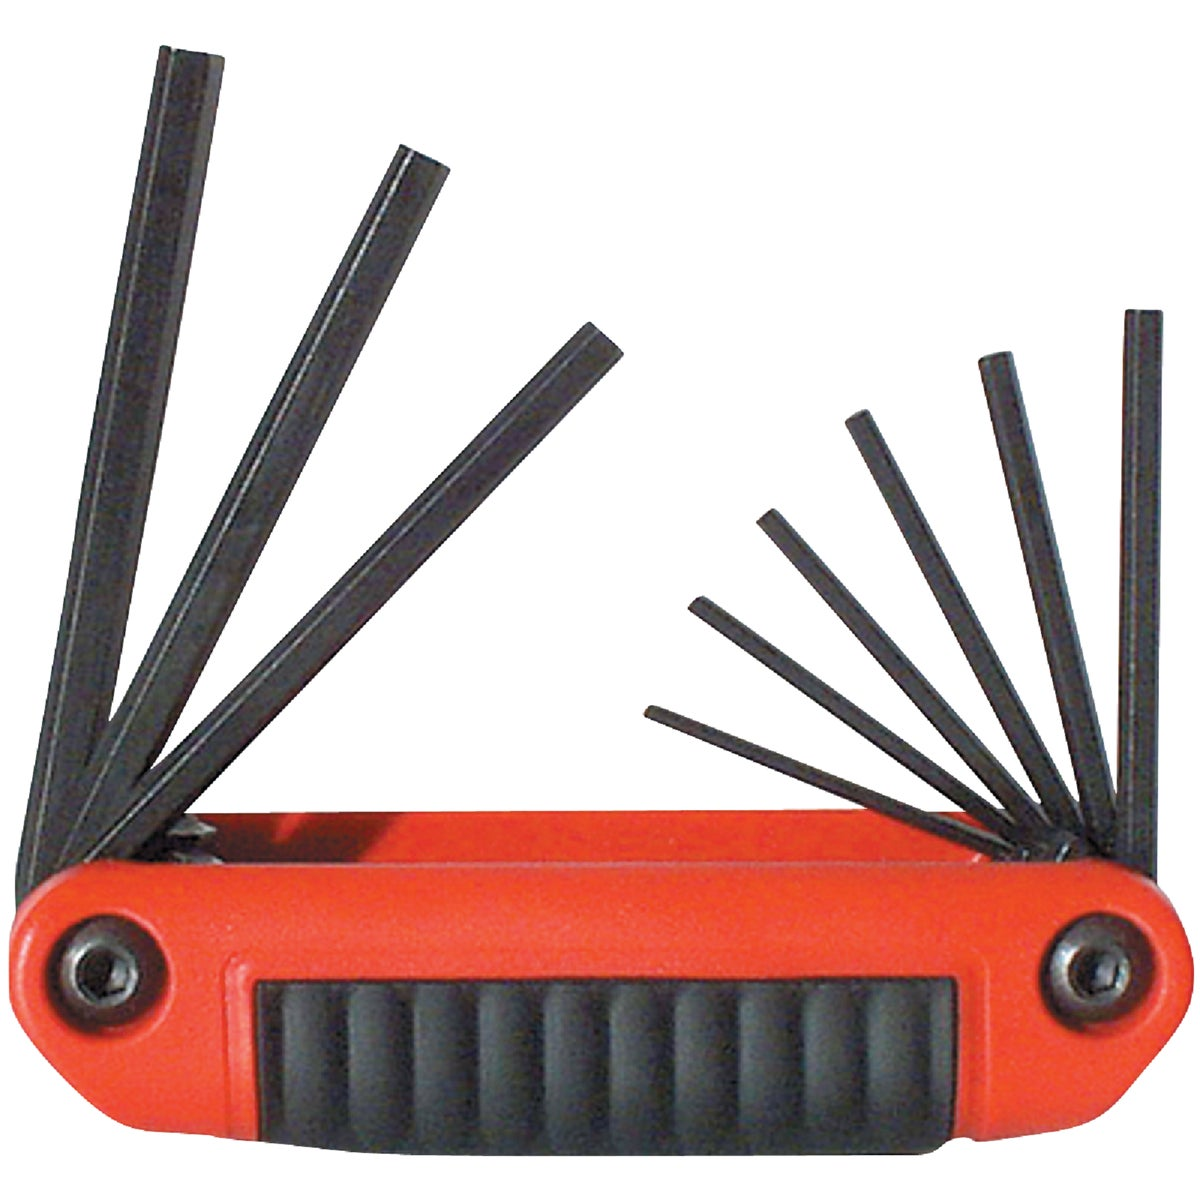 9PC HEX KEY SET - 25911 by Eklind